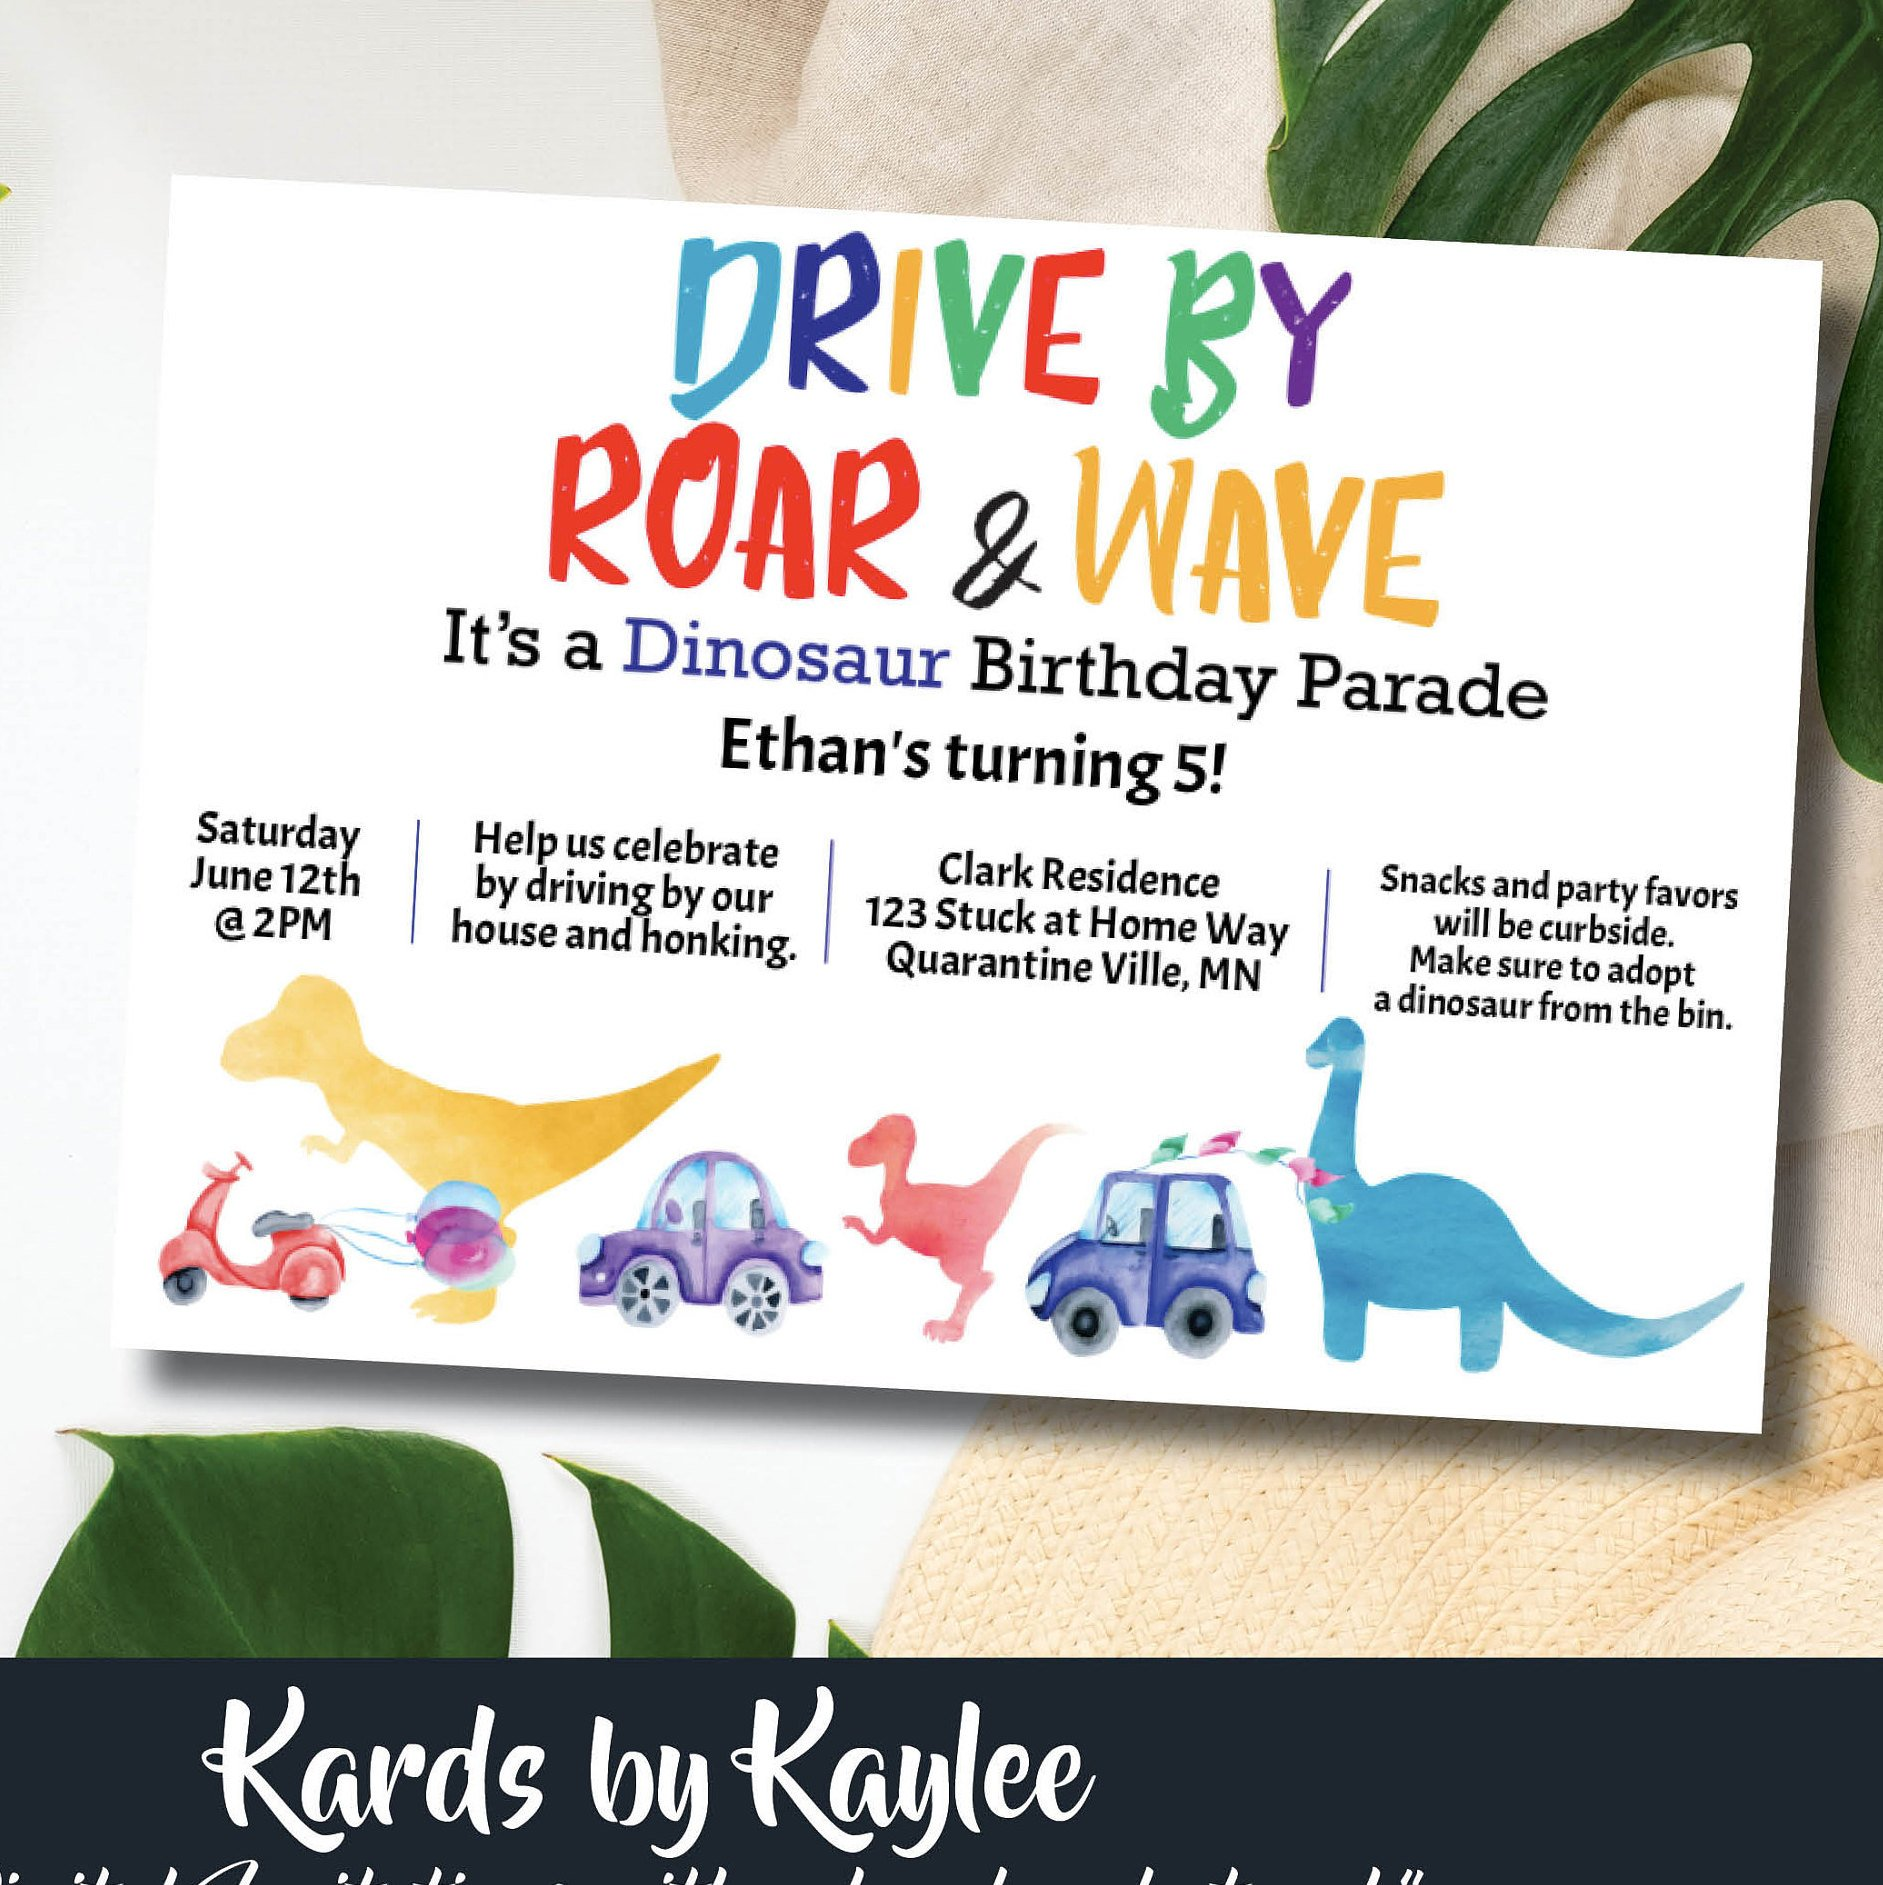 dinosaur birthday parade invitation instant download template drive by birthday party social distance celebration